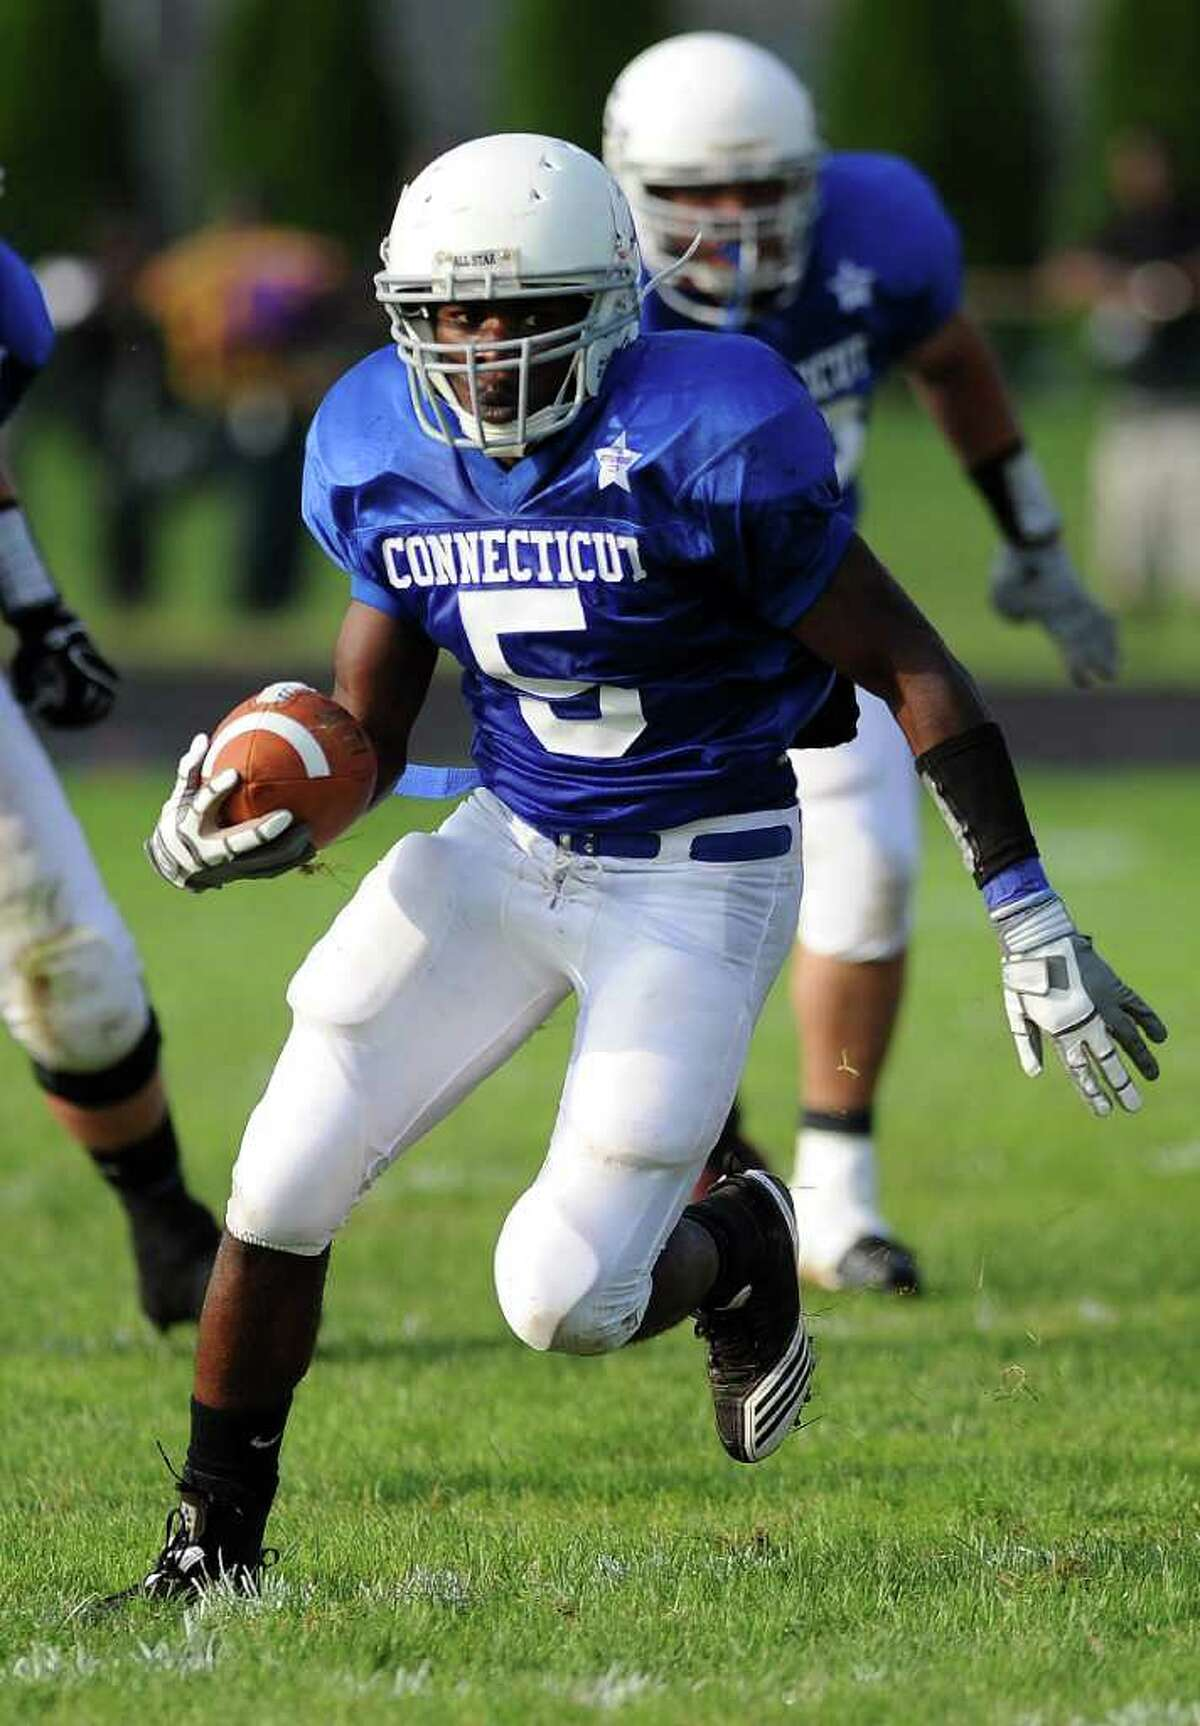 Ansonia High School's Montrell Dobbs carries the ball during the Connecticut High School football all-star game against Rhode Island on June 25, 2011, at Southington High School.